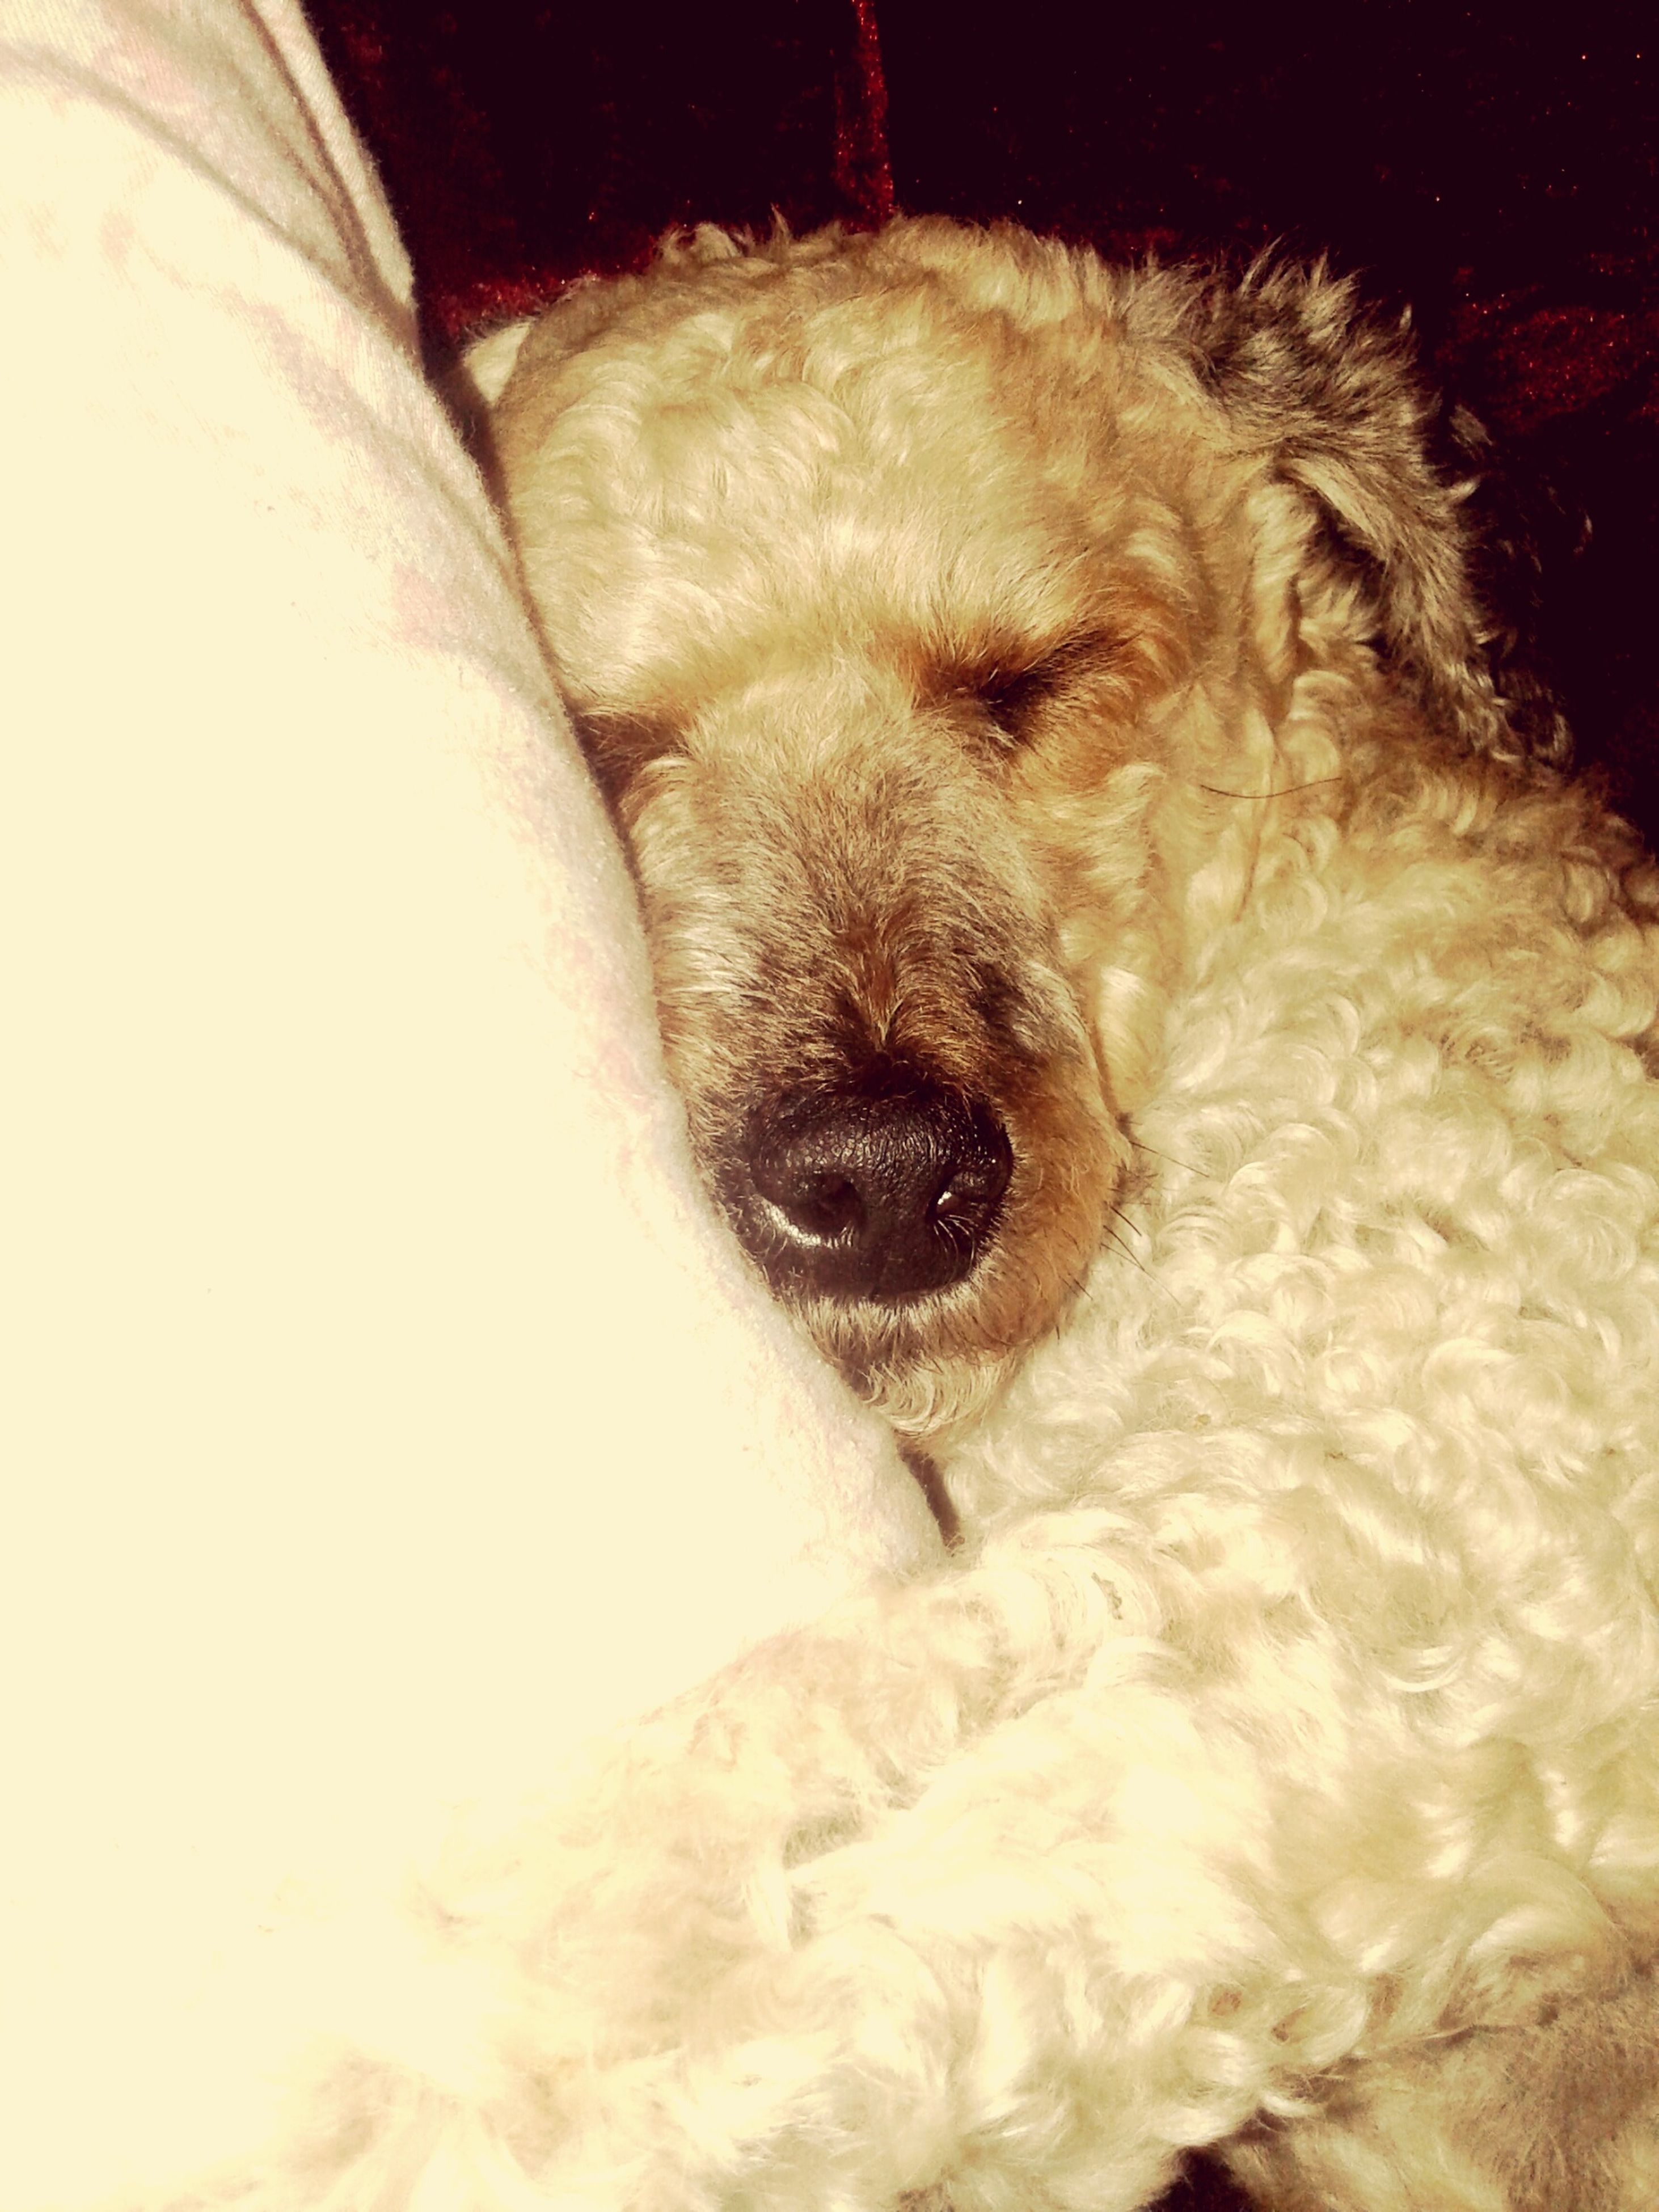 pets, one animal, animal themes, domestic animals, dog, mammal, indoors, white color, sleeping, relaxation, close-up, animal head, resting, animal body part, eyes closed, animal hair, lying down, no people, cold temperature, snow